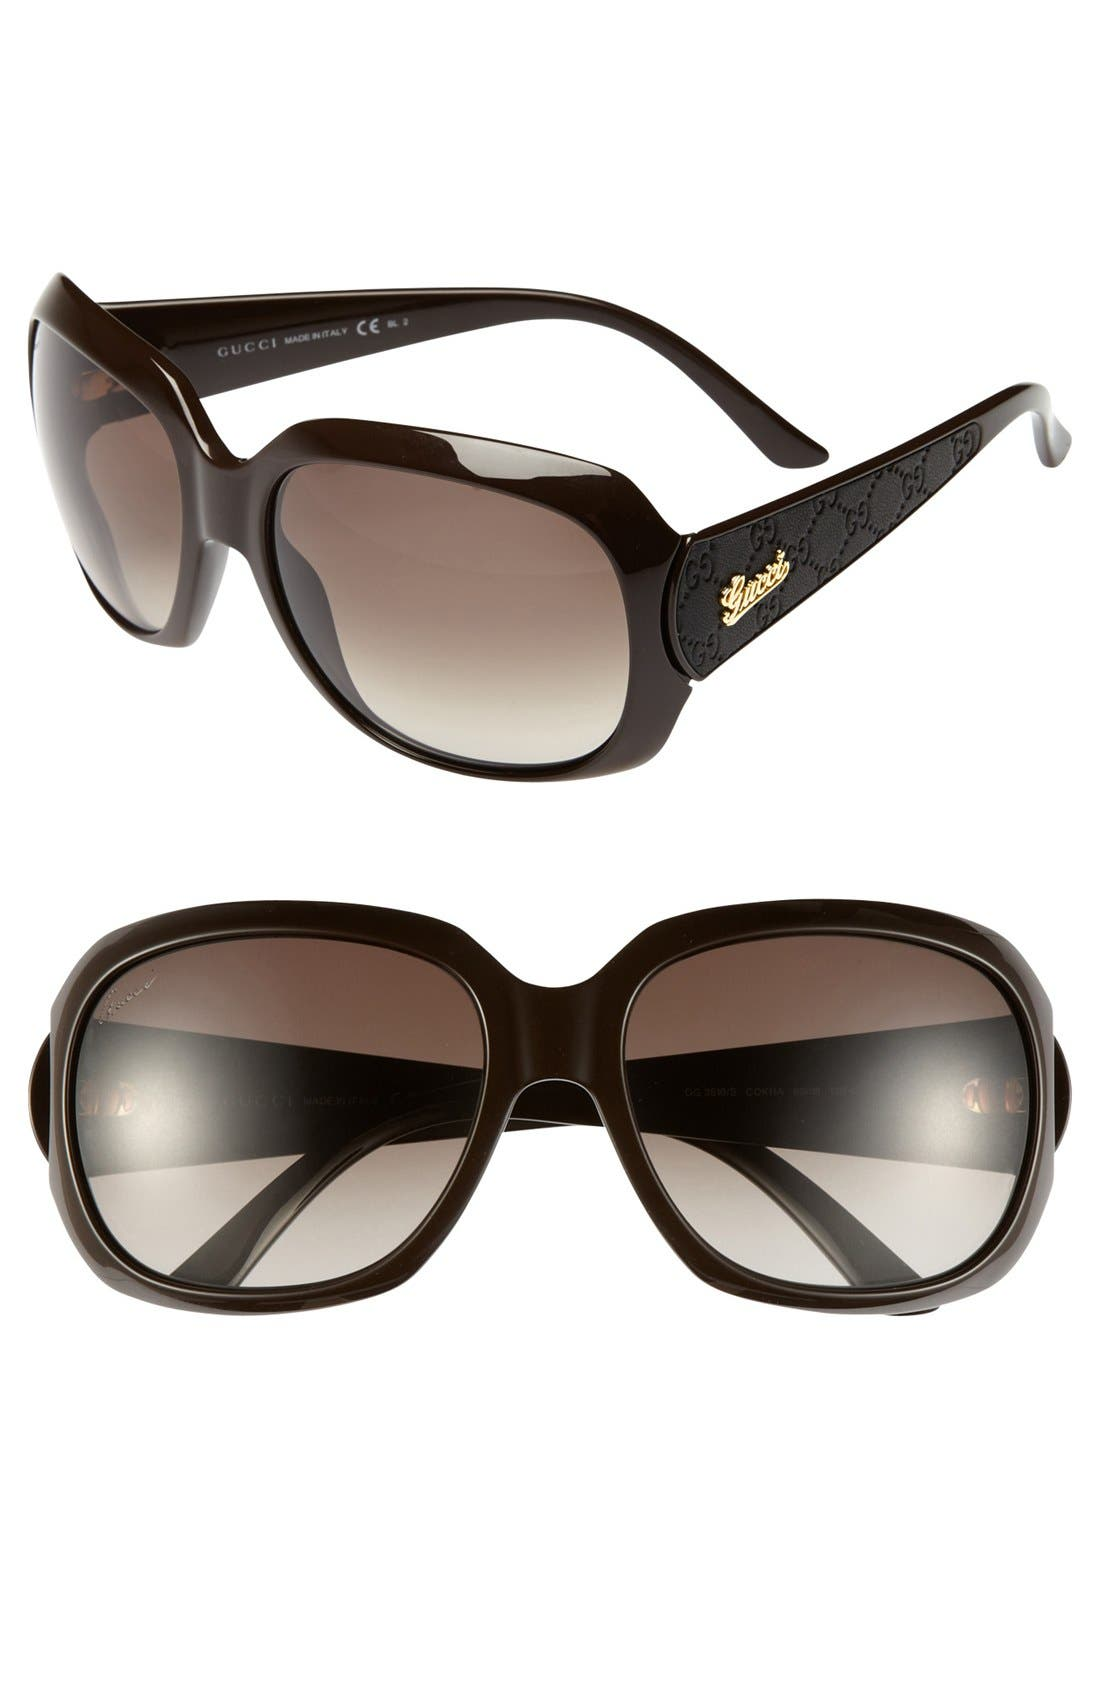 Main Image - Gucci 60mm Sunglasses (Online Only)